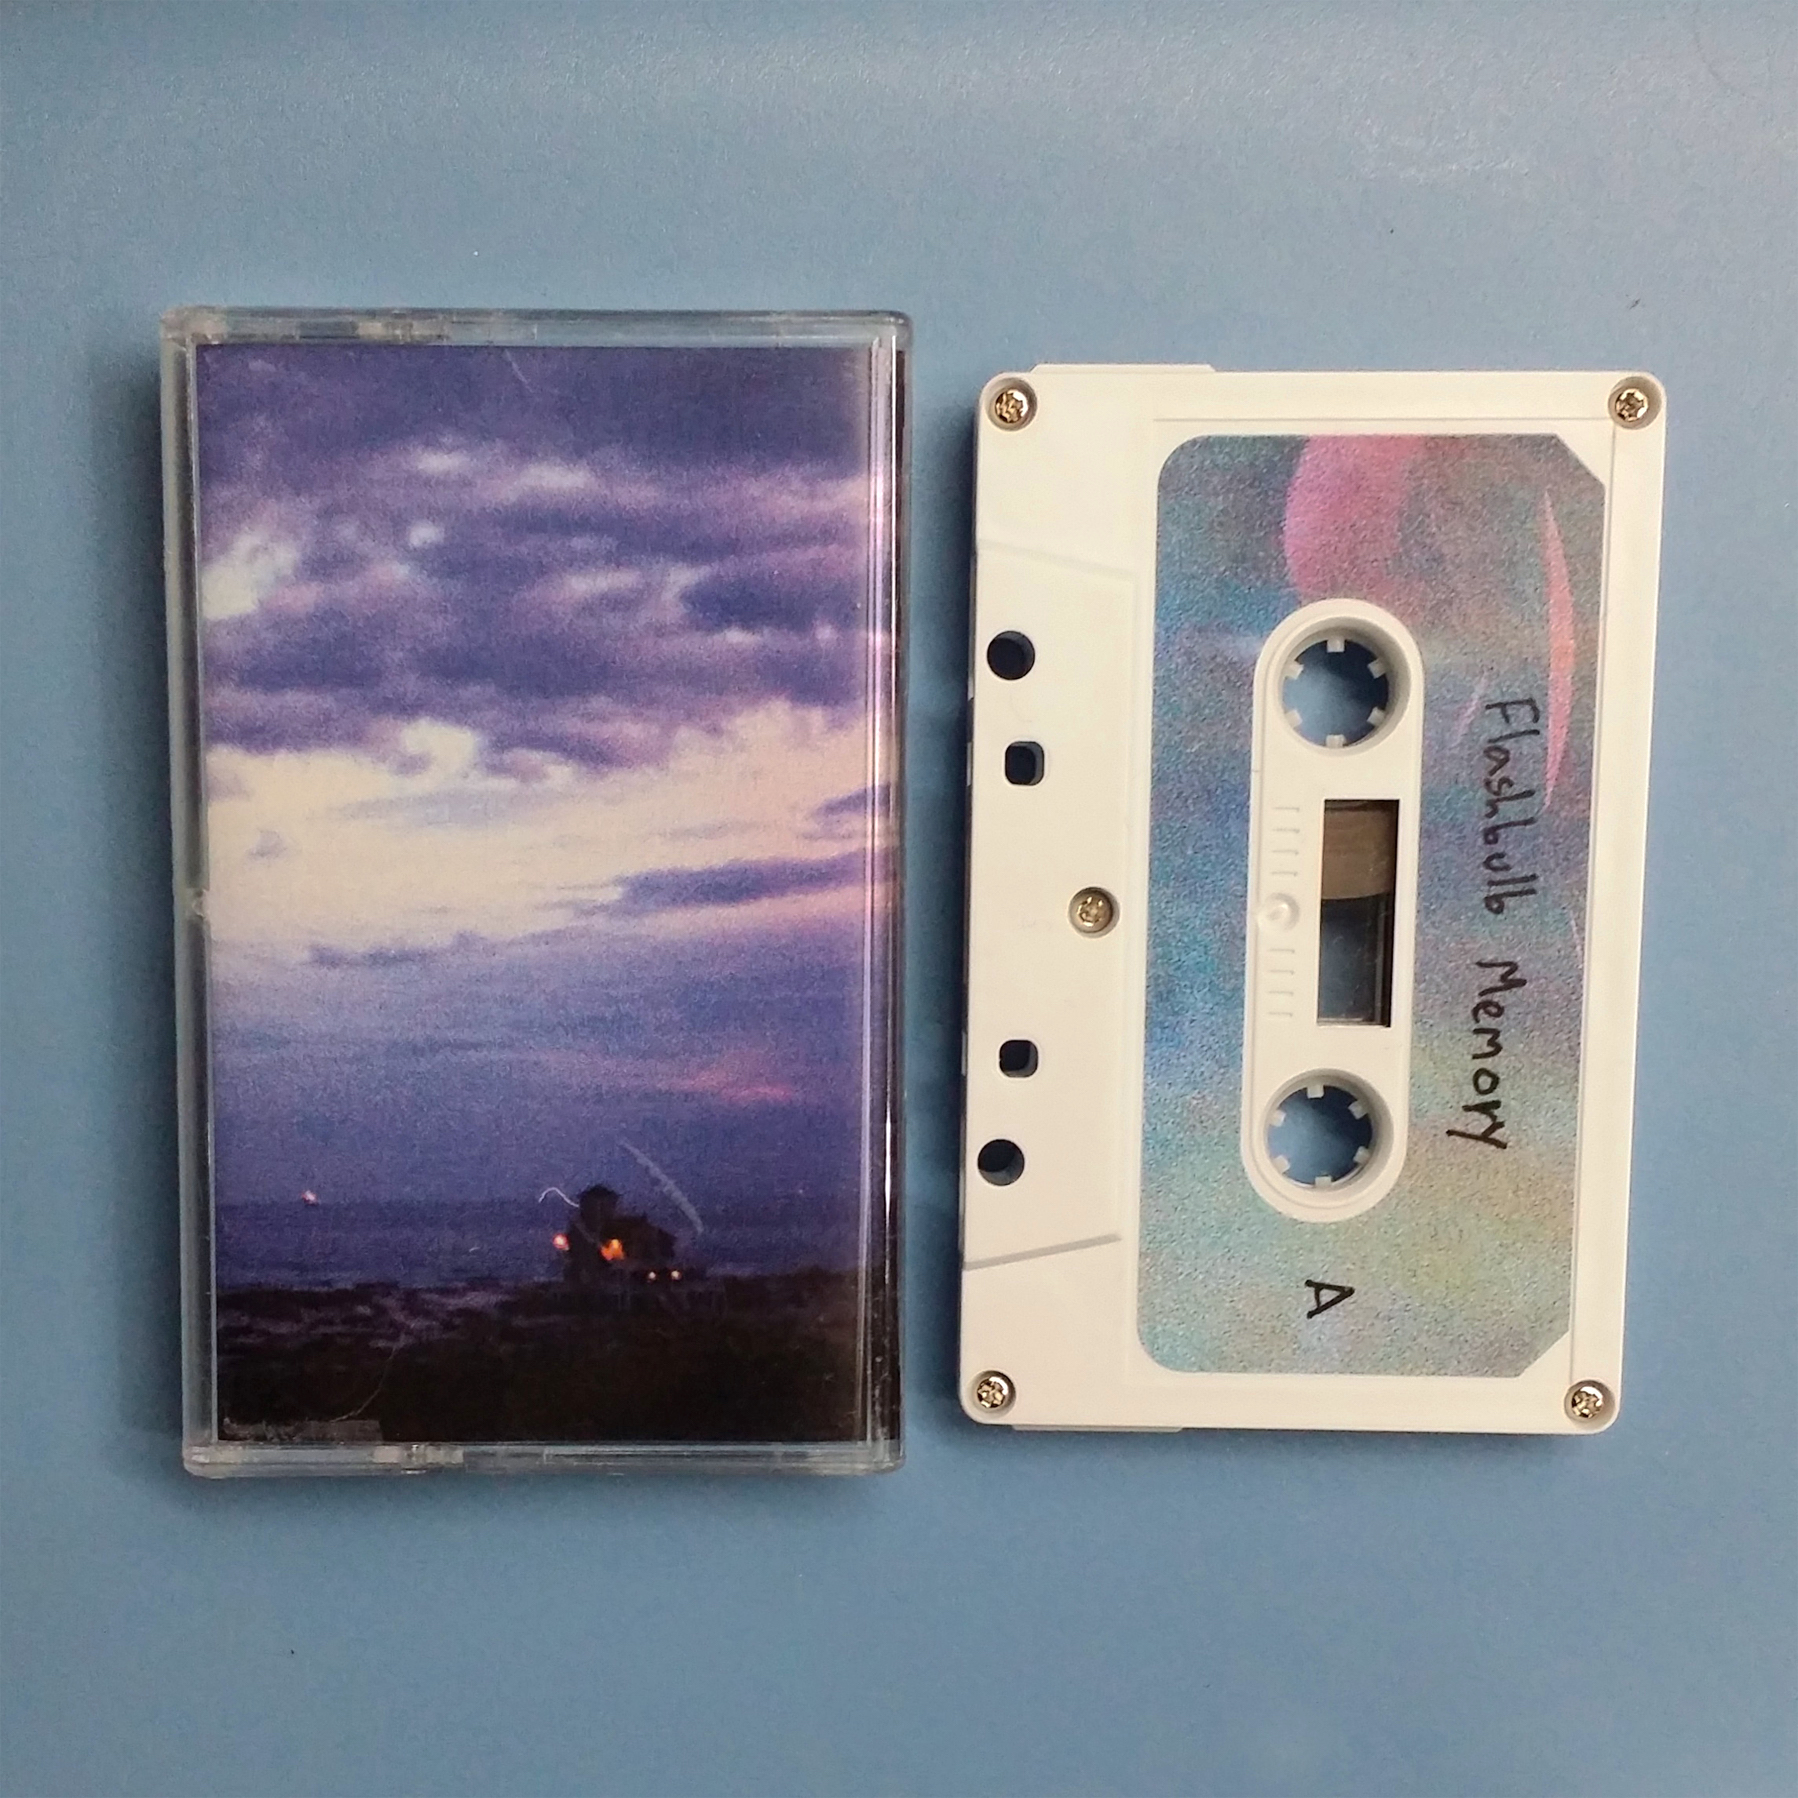 orchid mantis - flashbulb memory (Track and Field Records)